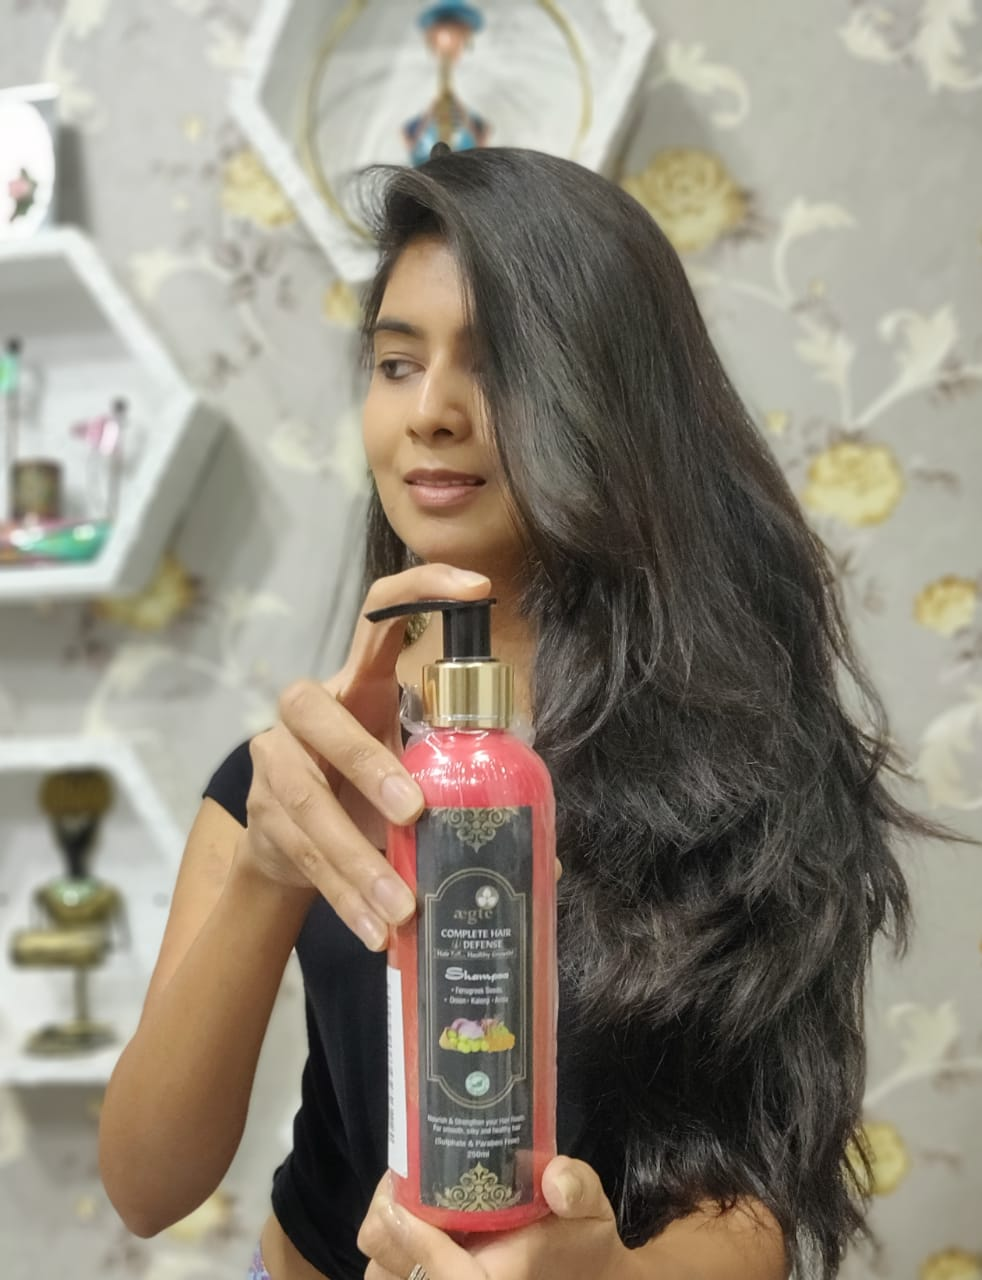 Aegte Complete Hair Defense Shampoo Enriched with Red Onion, Fenugreek Seeds, Kalonji & Amla -Get Healthy and smooth hair with this awesome product-By purvidhaniwala